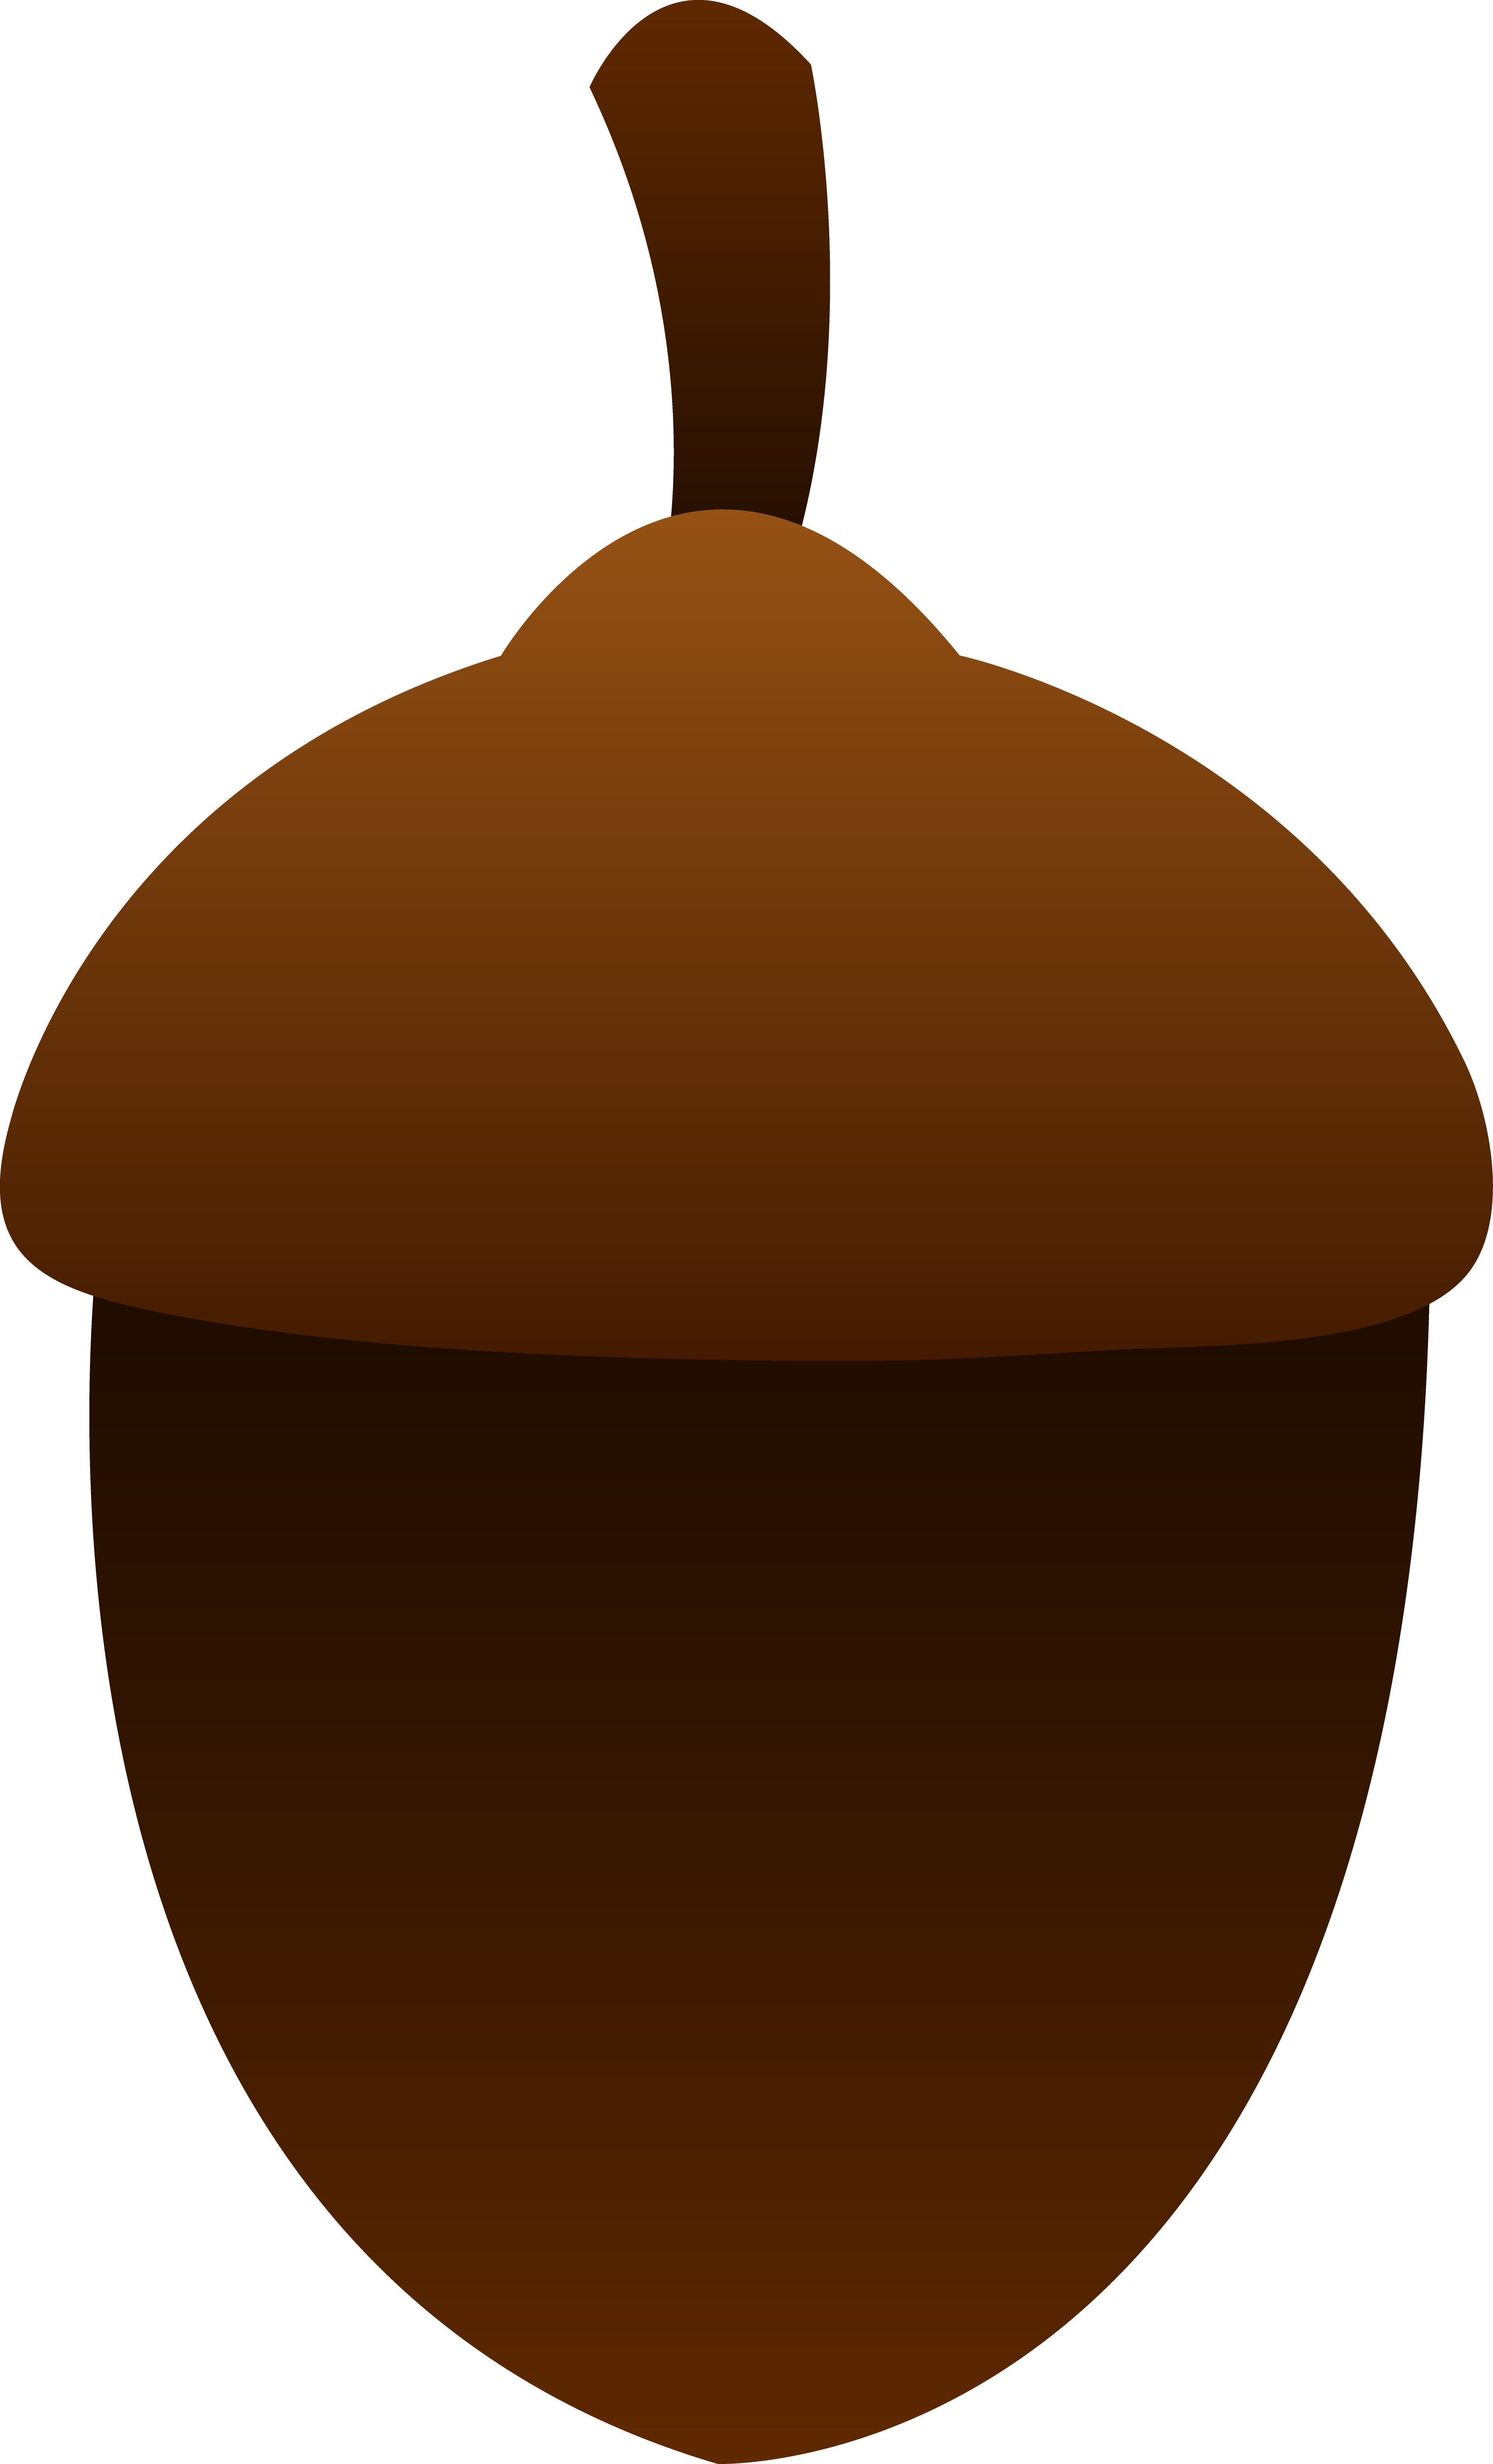 Acorn clipart simple